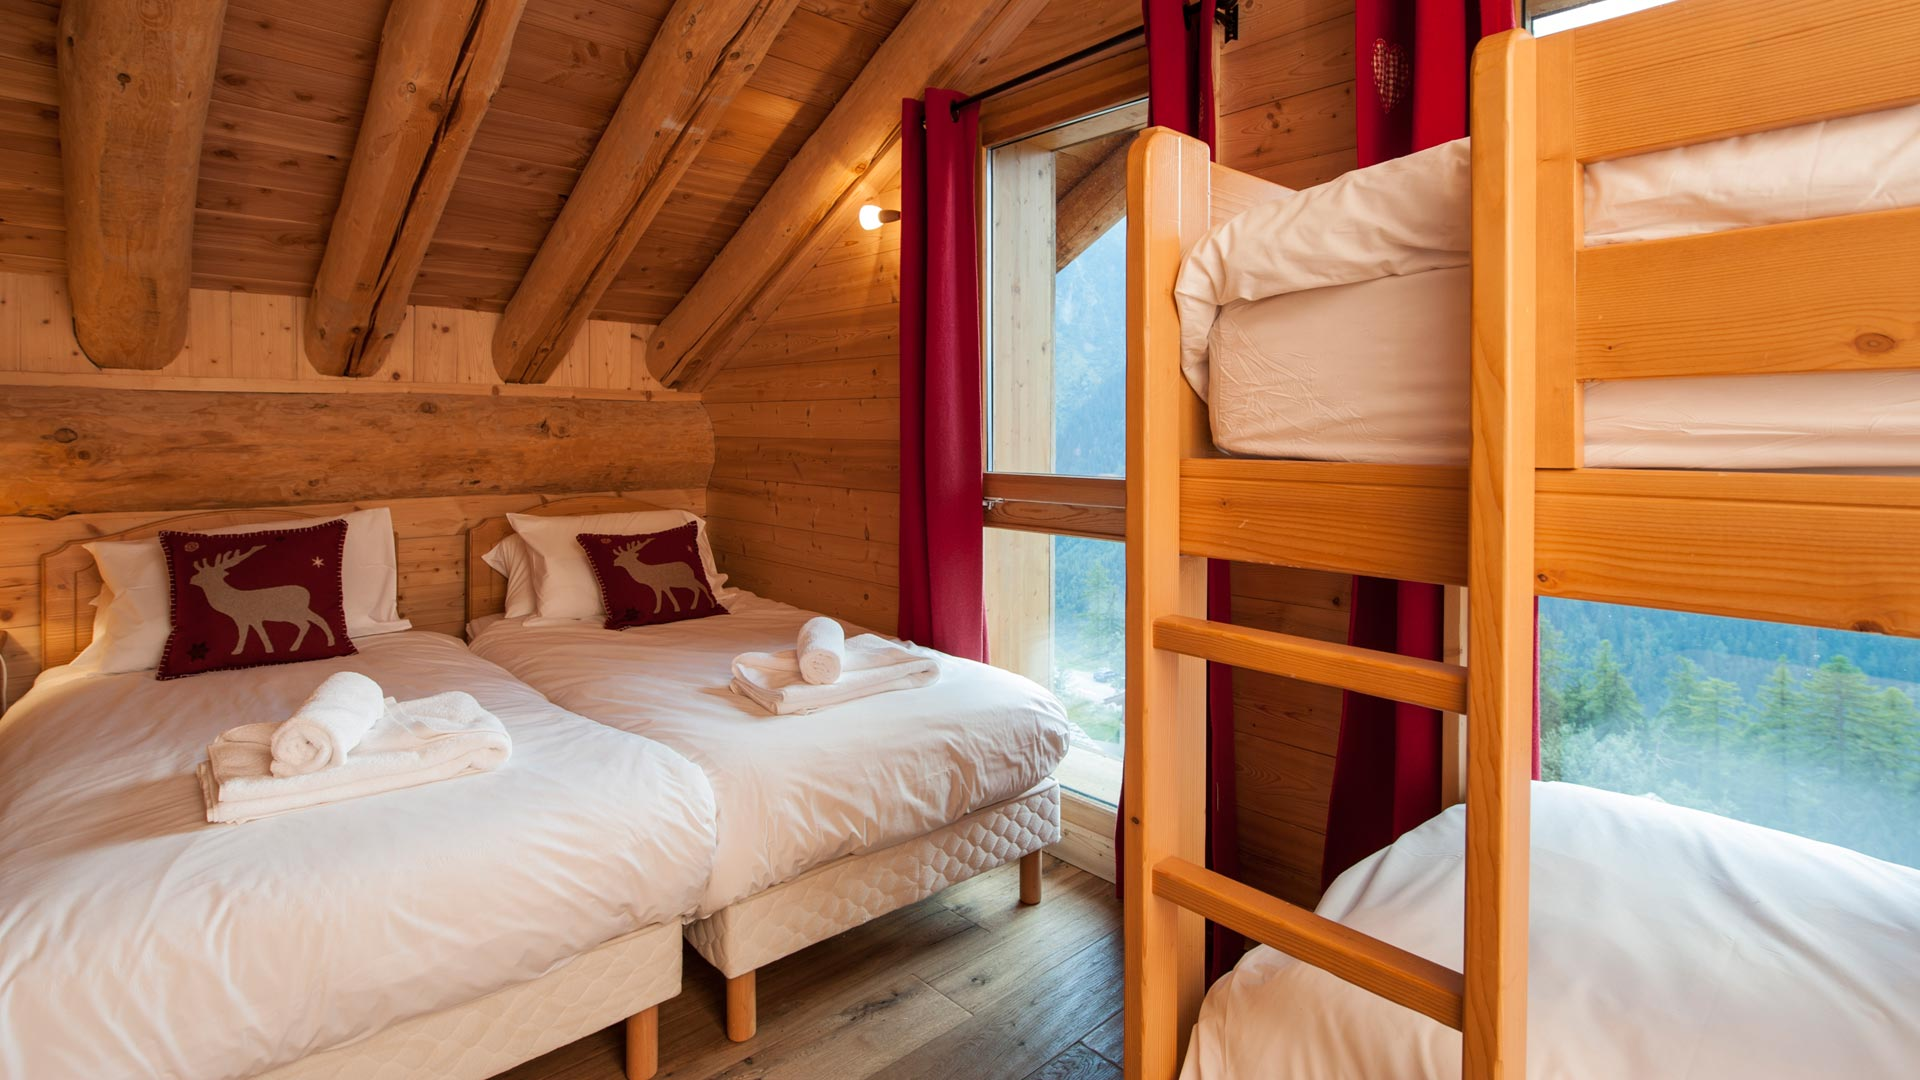 Twin Bedroom With Bunk Bed in La Vanoise Chalet in Ste Foy